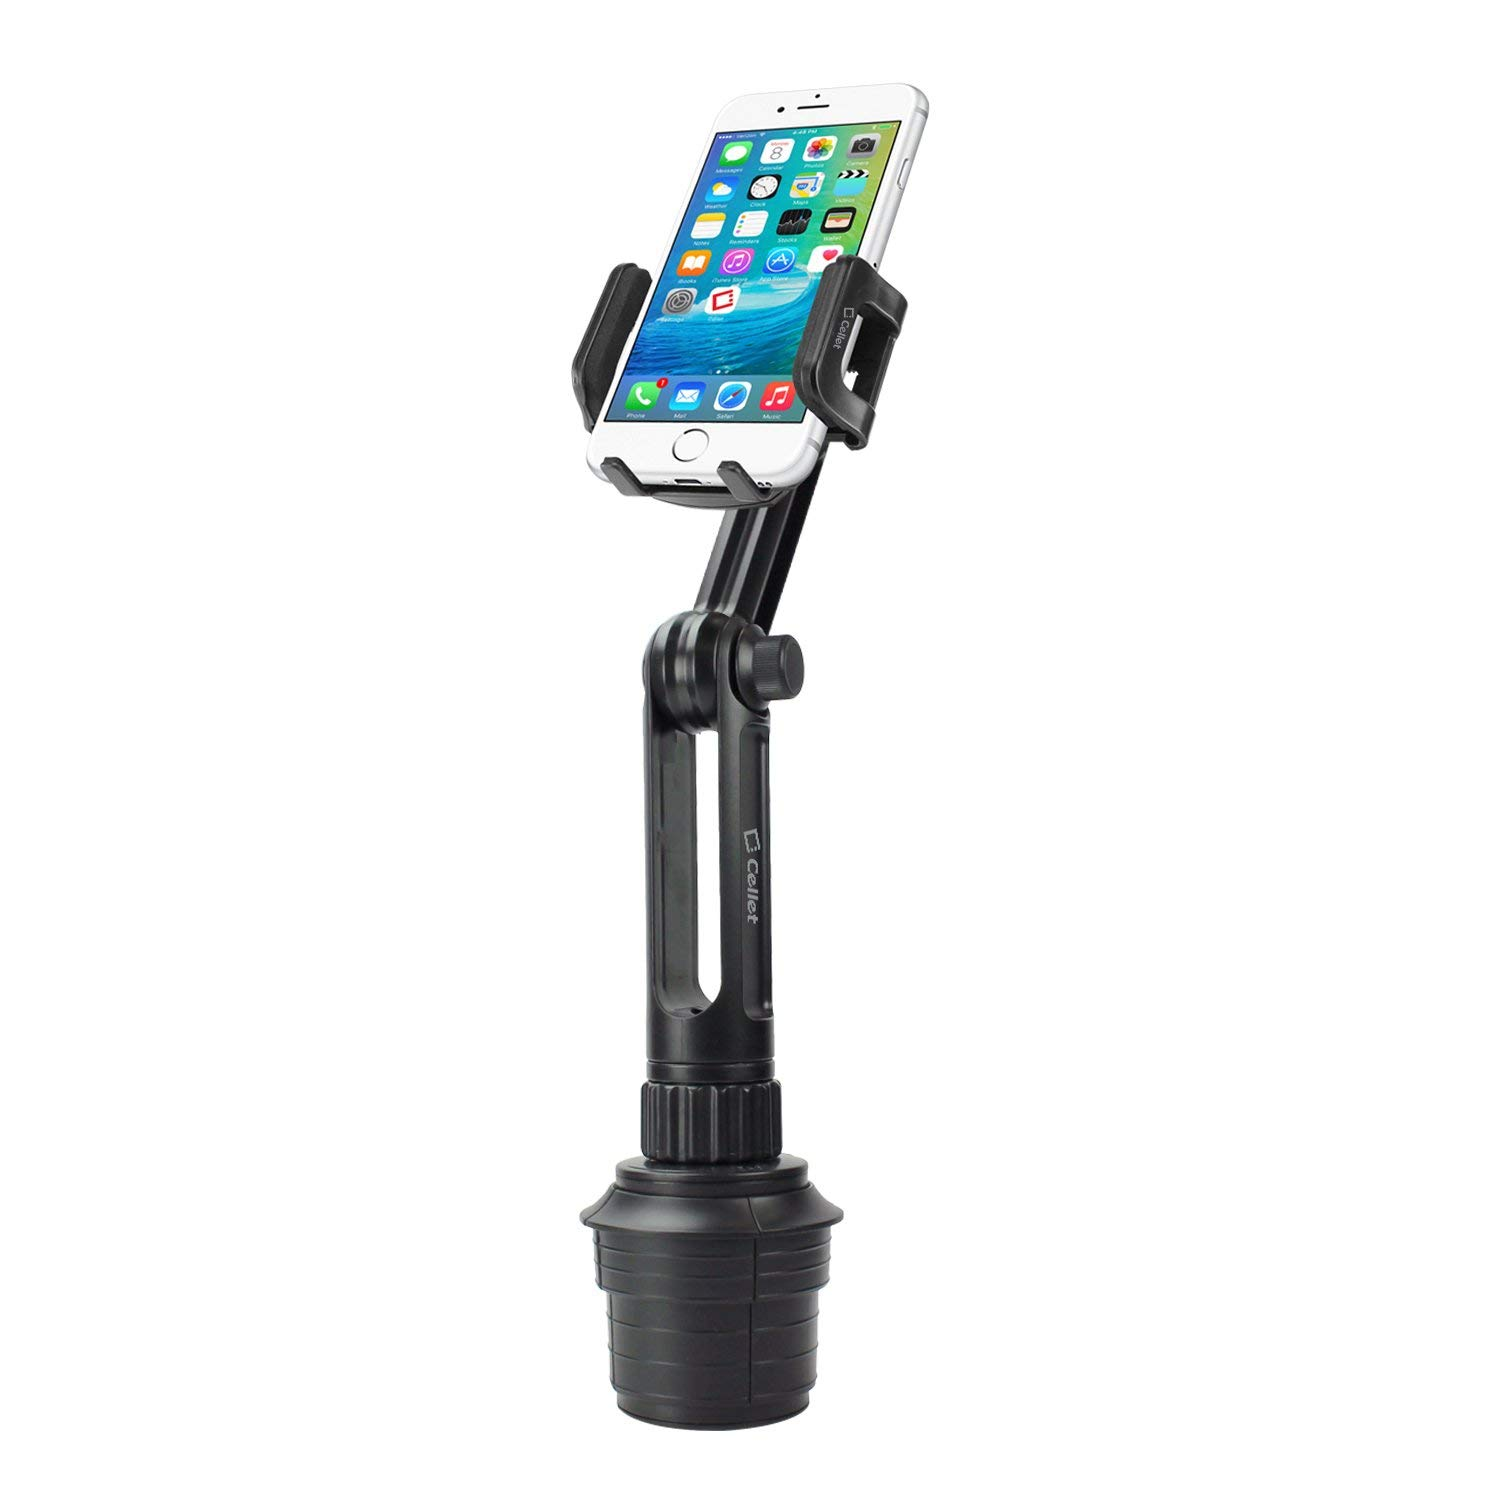 Cellet Car Cup Holder Mount for Apple iPhone Xr Xs Max X 8 7 Samsung Note 10 9 8 Galaxy S10e S10 Plus S9 Plus S8 Plus LG V40 G7 G6 Q7+ Stylo 4 V35 Moto G6 X4 Google Pixel 3 XL (Long Neck 13in) by Cellet